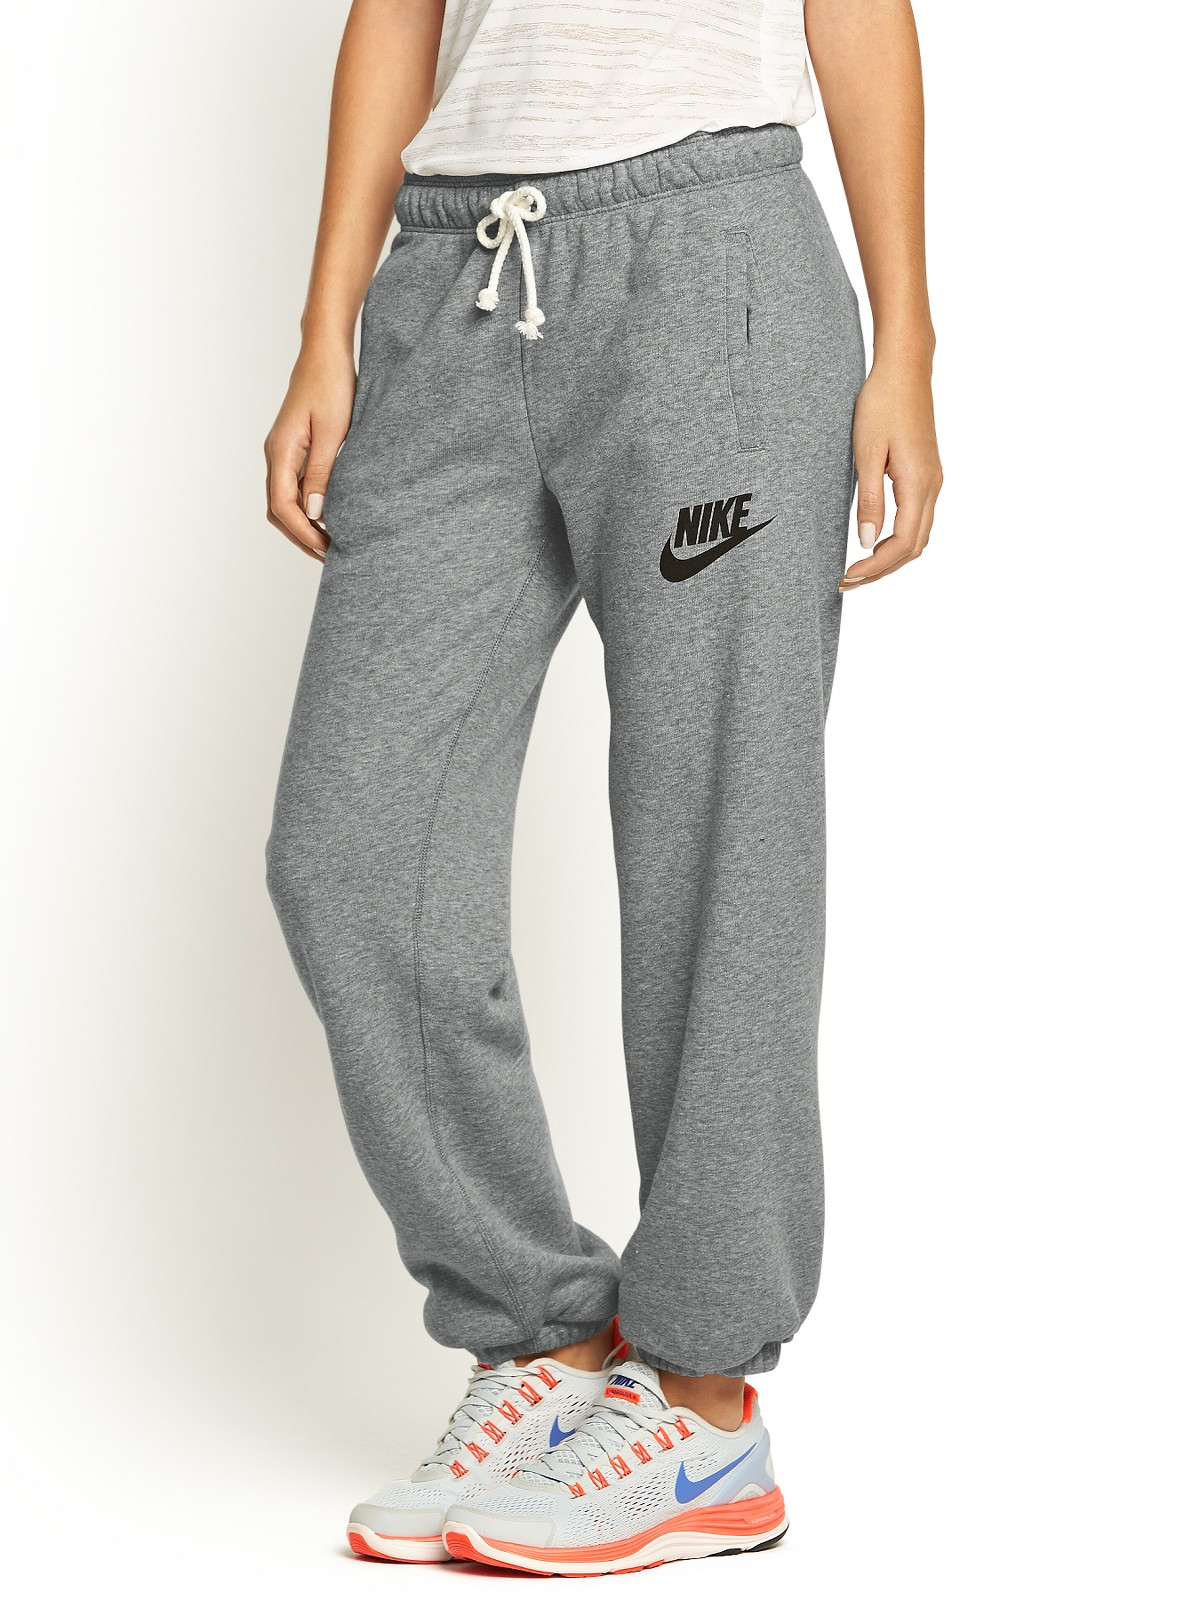 Nike Rally Loose Fit Pants in Gray (grey)